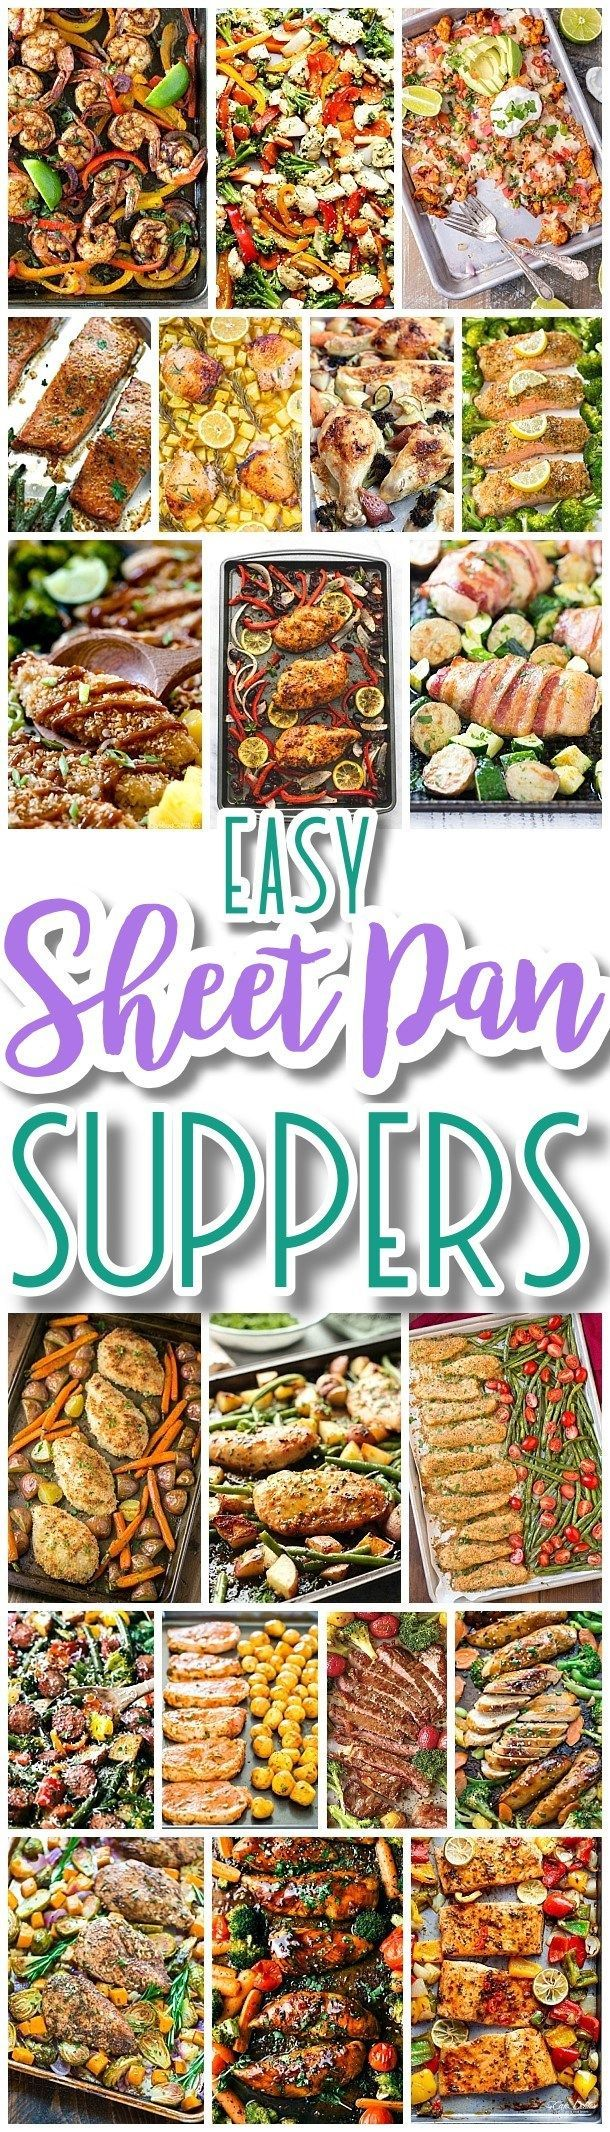 The BEST Sheet Pan Suppers Recipes - Easy and Quick Family Lunch and Simple Dinner Meal Ideas using only ONE baking SHEET PAN - Dreaming in DIY